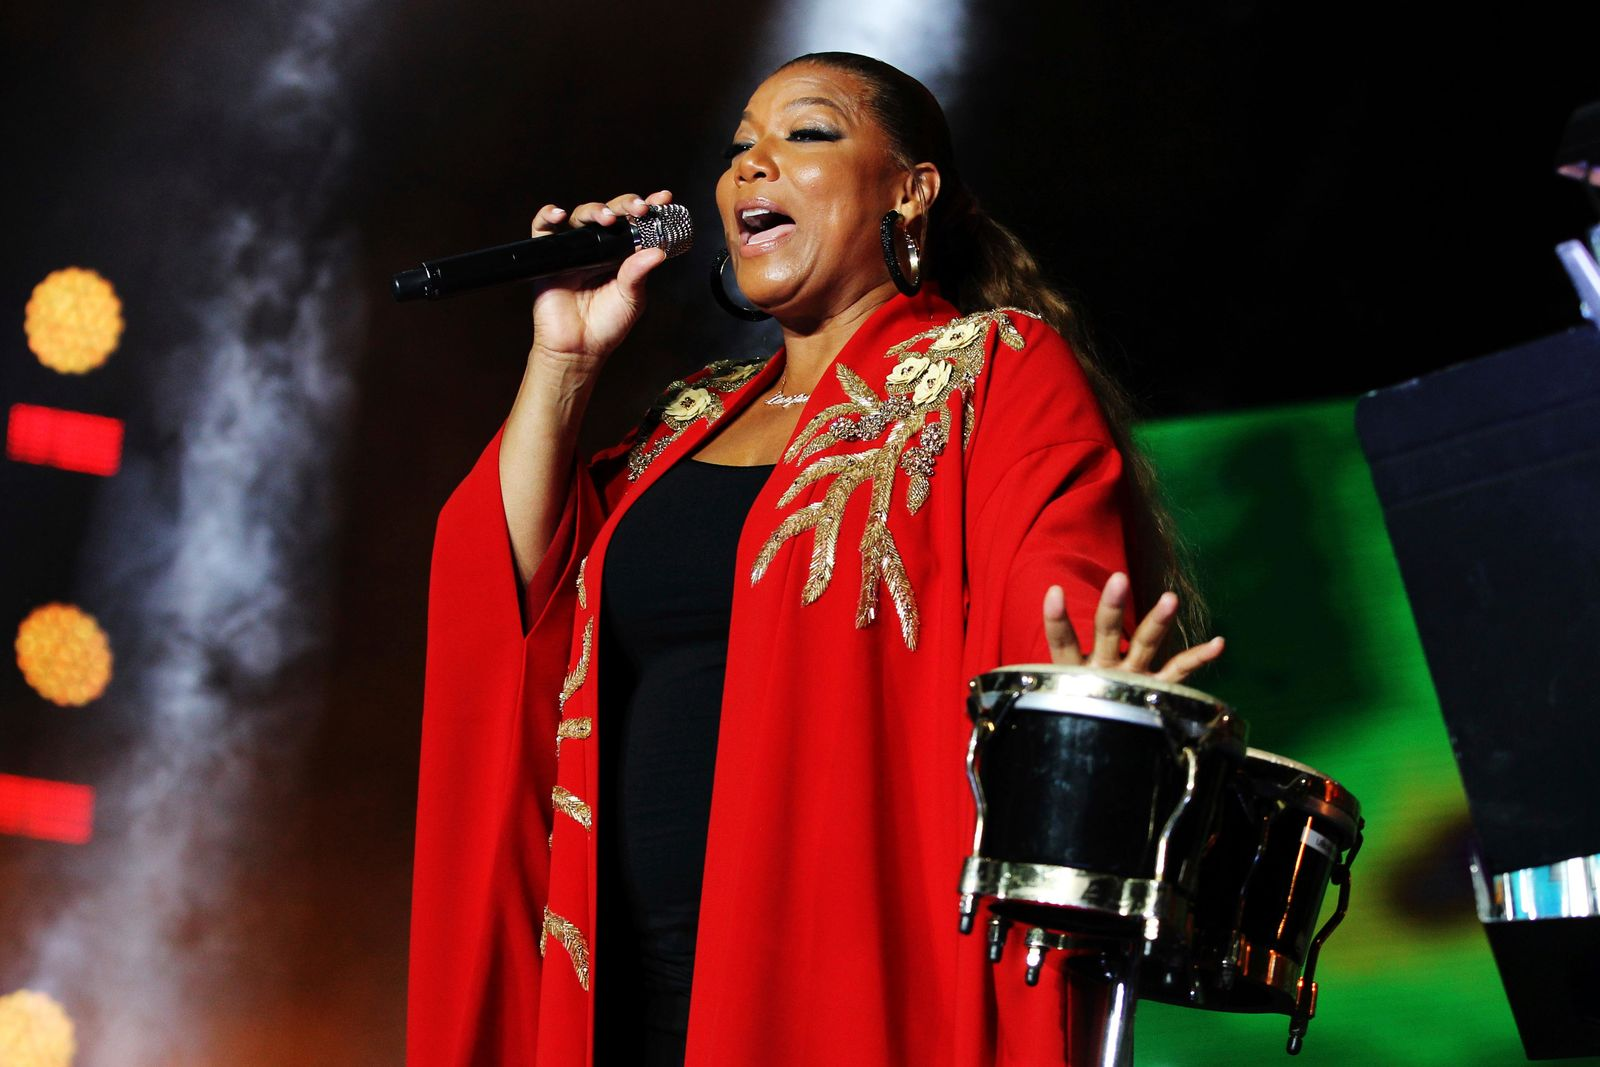 Queen Latifah performs at the 2018 Essence Festival at the Mercedes-Benz Superdome on Saturday, July 7, 2018, in New Orleans. (Photo by Donald Traill/Invision/AP)